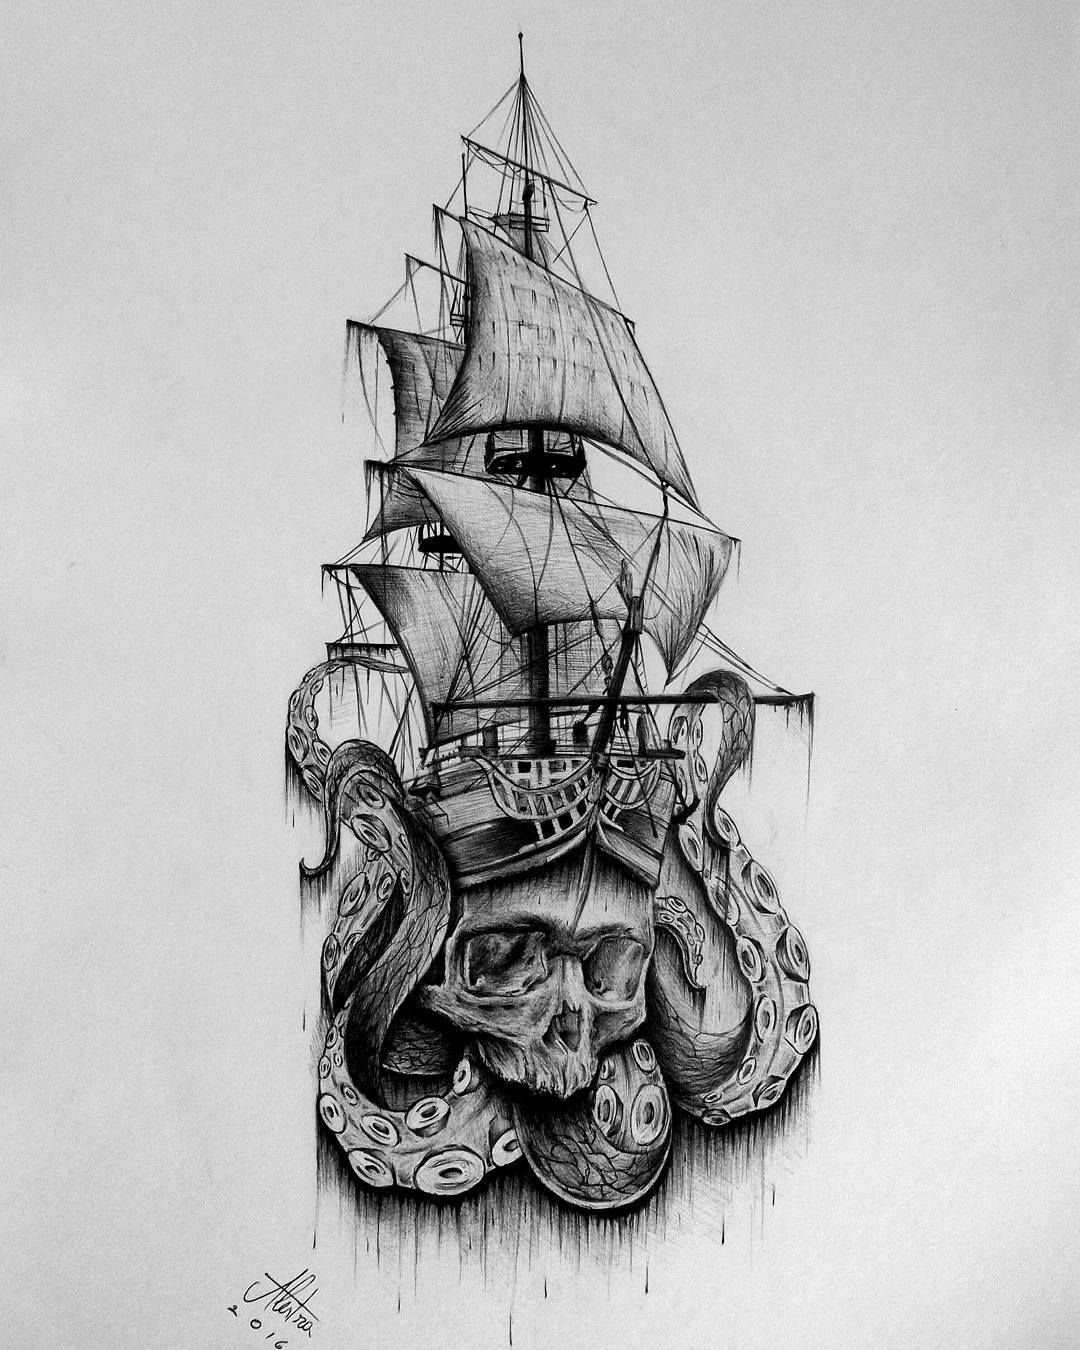 pirate boat drawing pirate ship by gjsx51 on deviantart drawing boat pirate